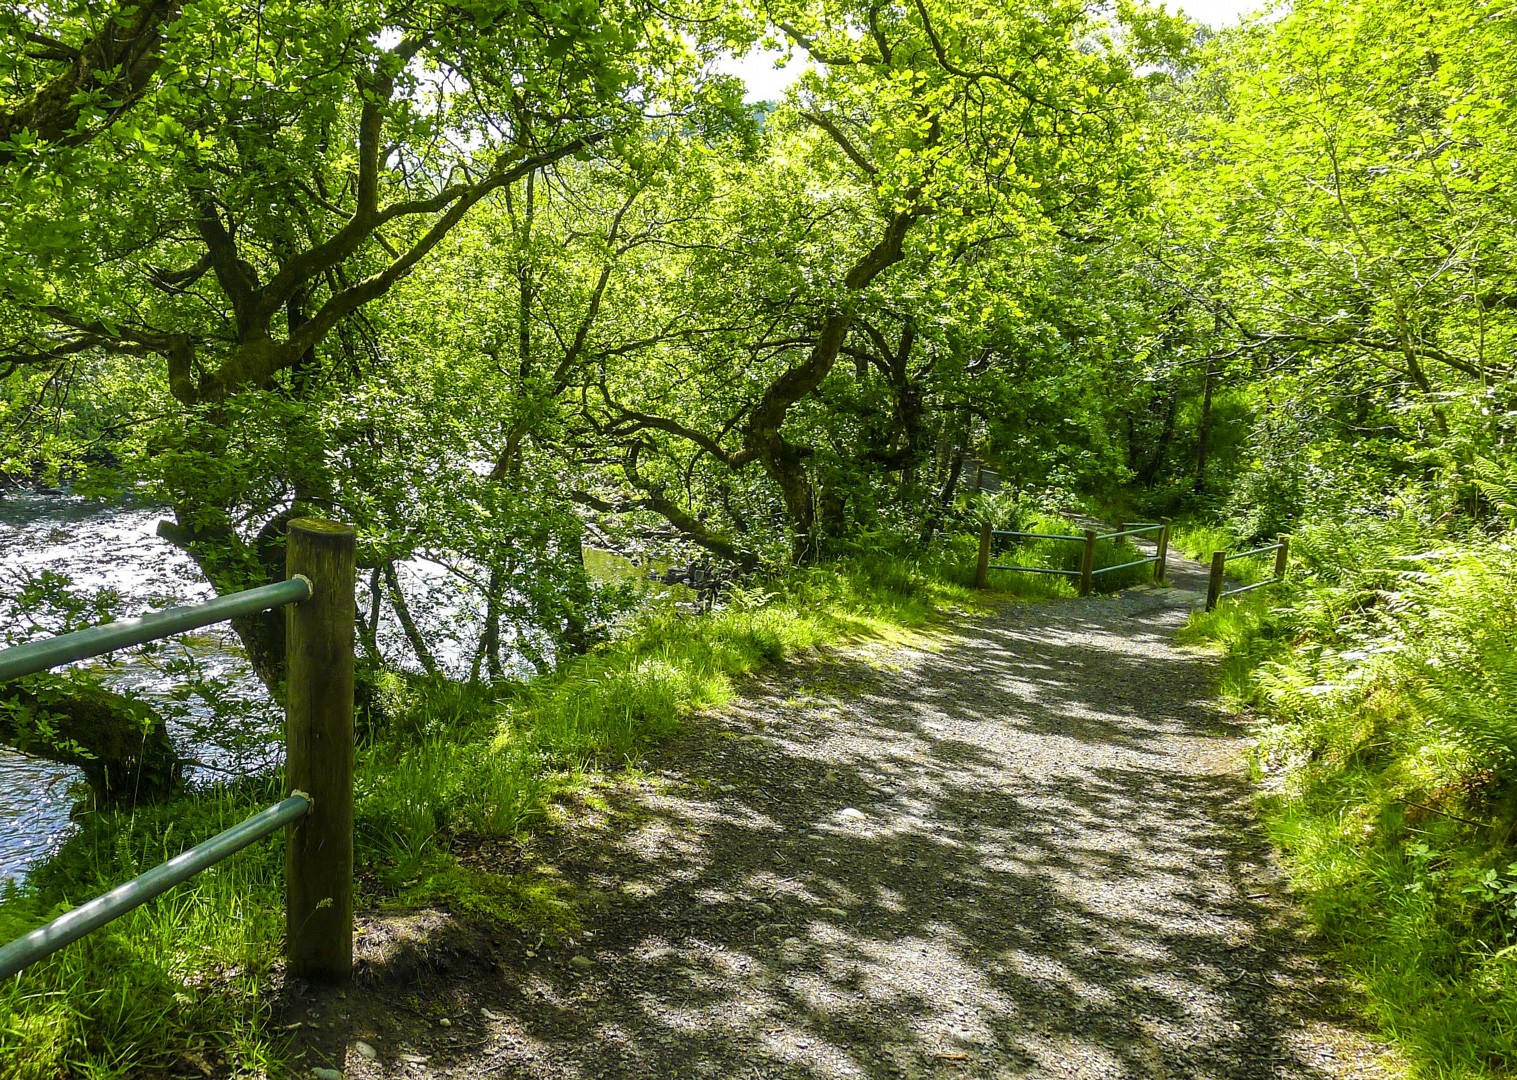 sustrans-traffic-free-cycle-paths-family-holiday-scotland-uk-skedaddle.jpg - UK - Scotland - Lochs and Glens - Self-Guided Family Cycling Holiday - Family Cycling